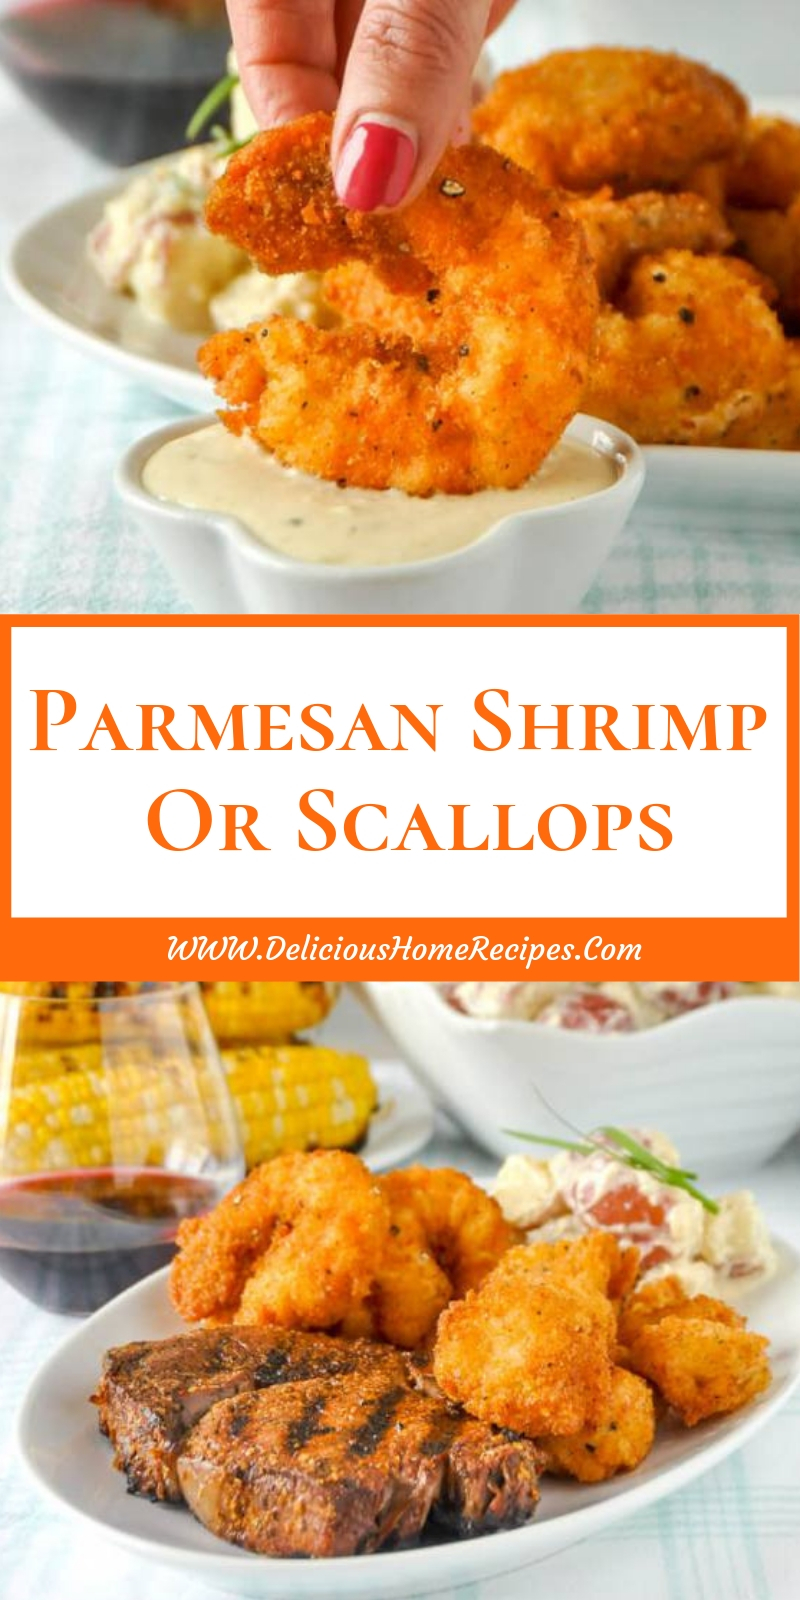 Parmesan Shrimp Or Scallops